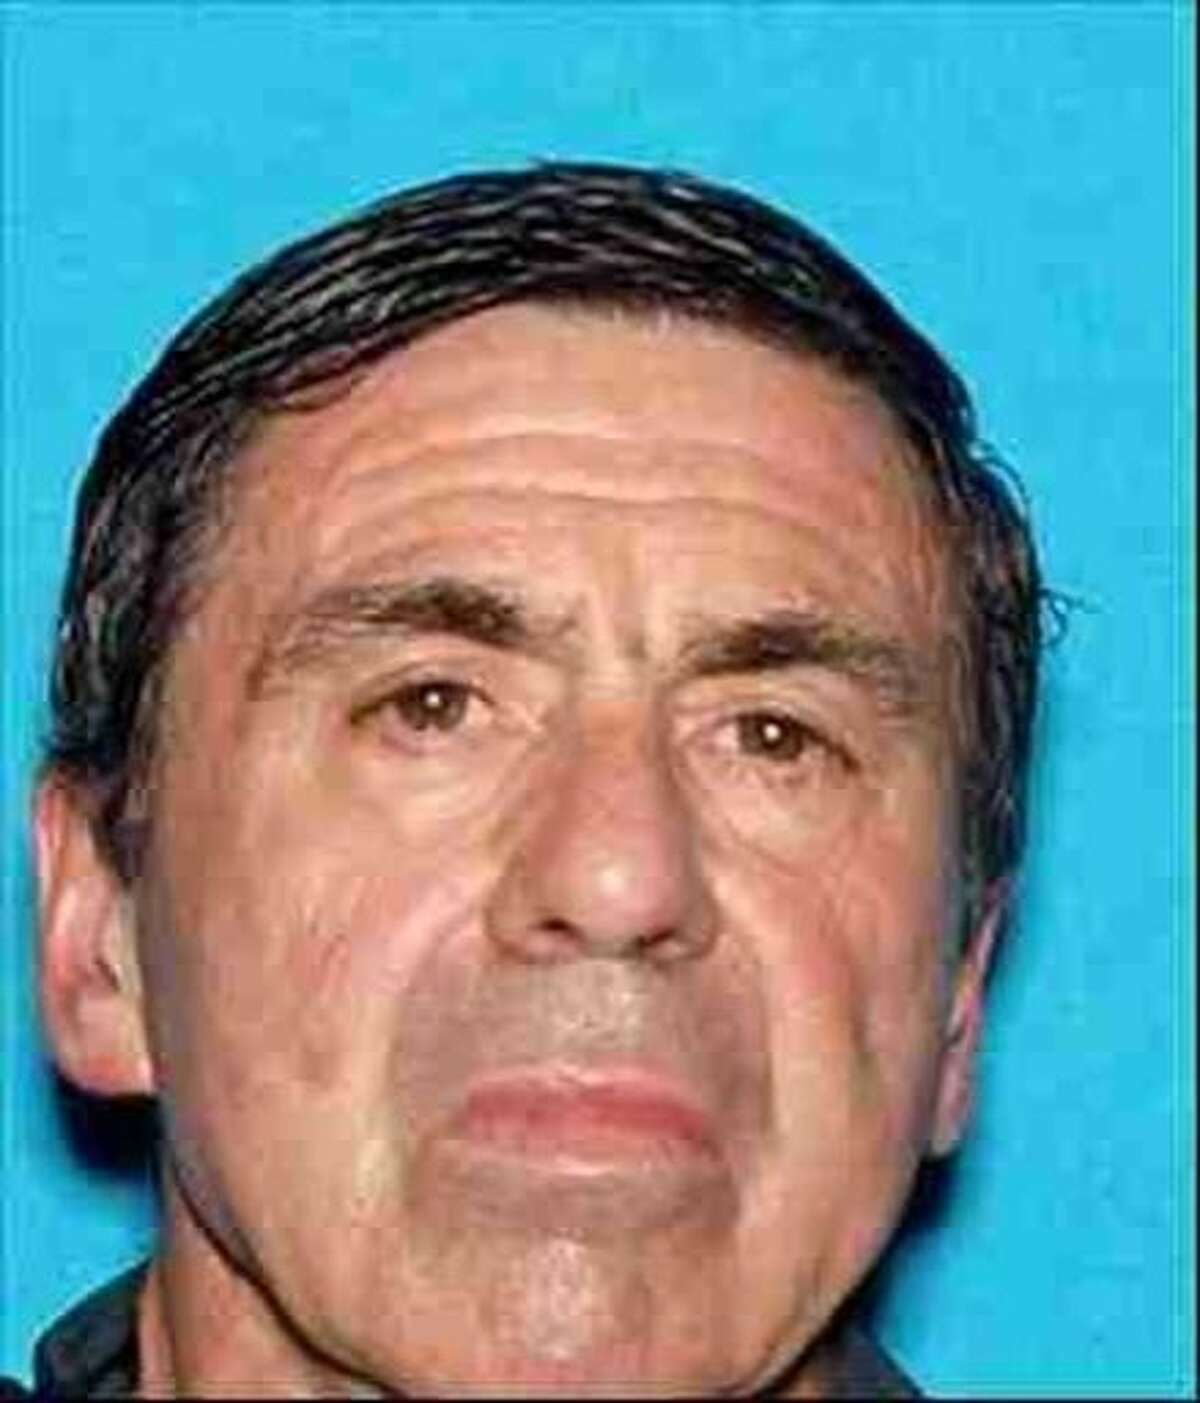 Authorities are searching for George Kohler 67, of San Francisco. He hasn t been seen since he stepped away from a campfire in Death Valley National Park on March 12.